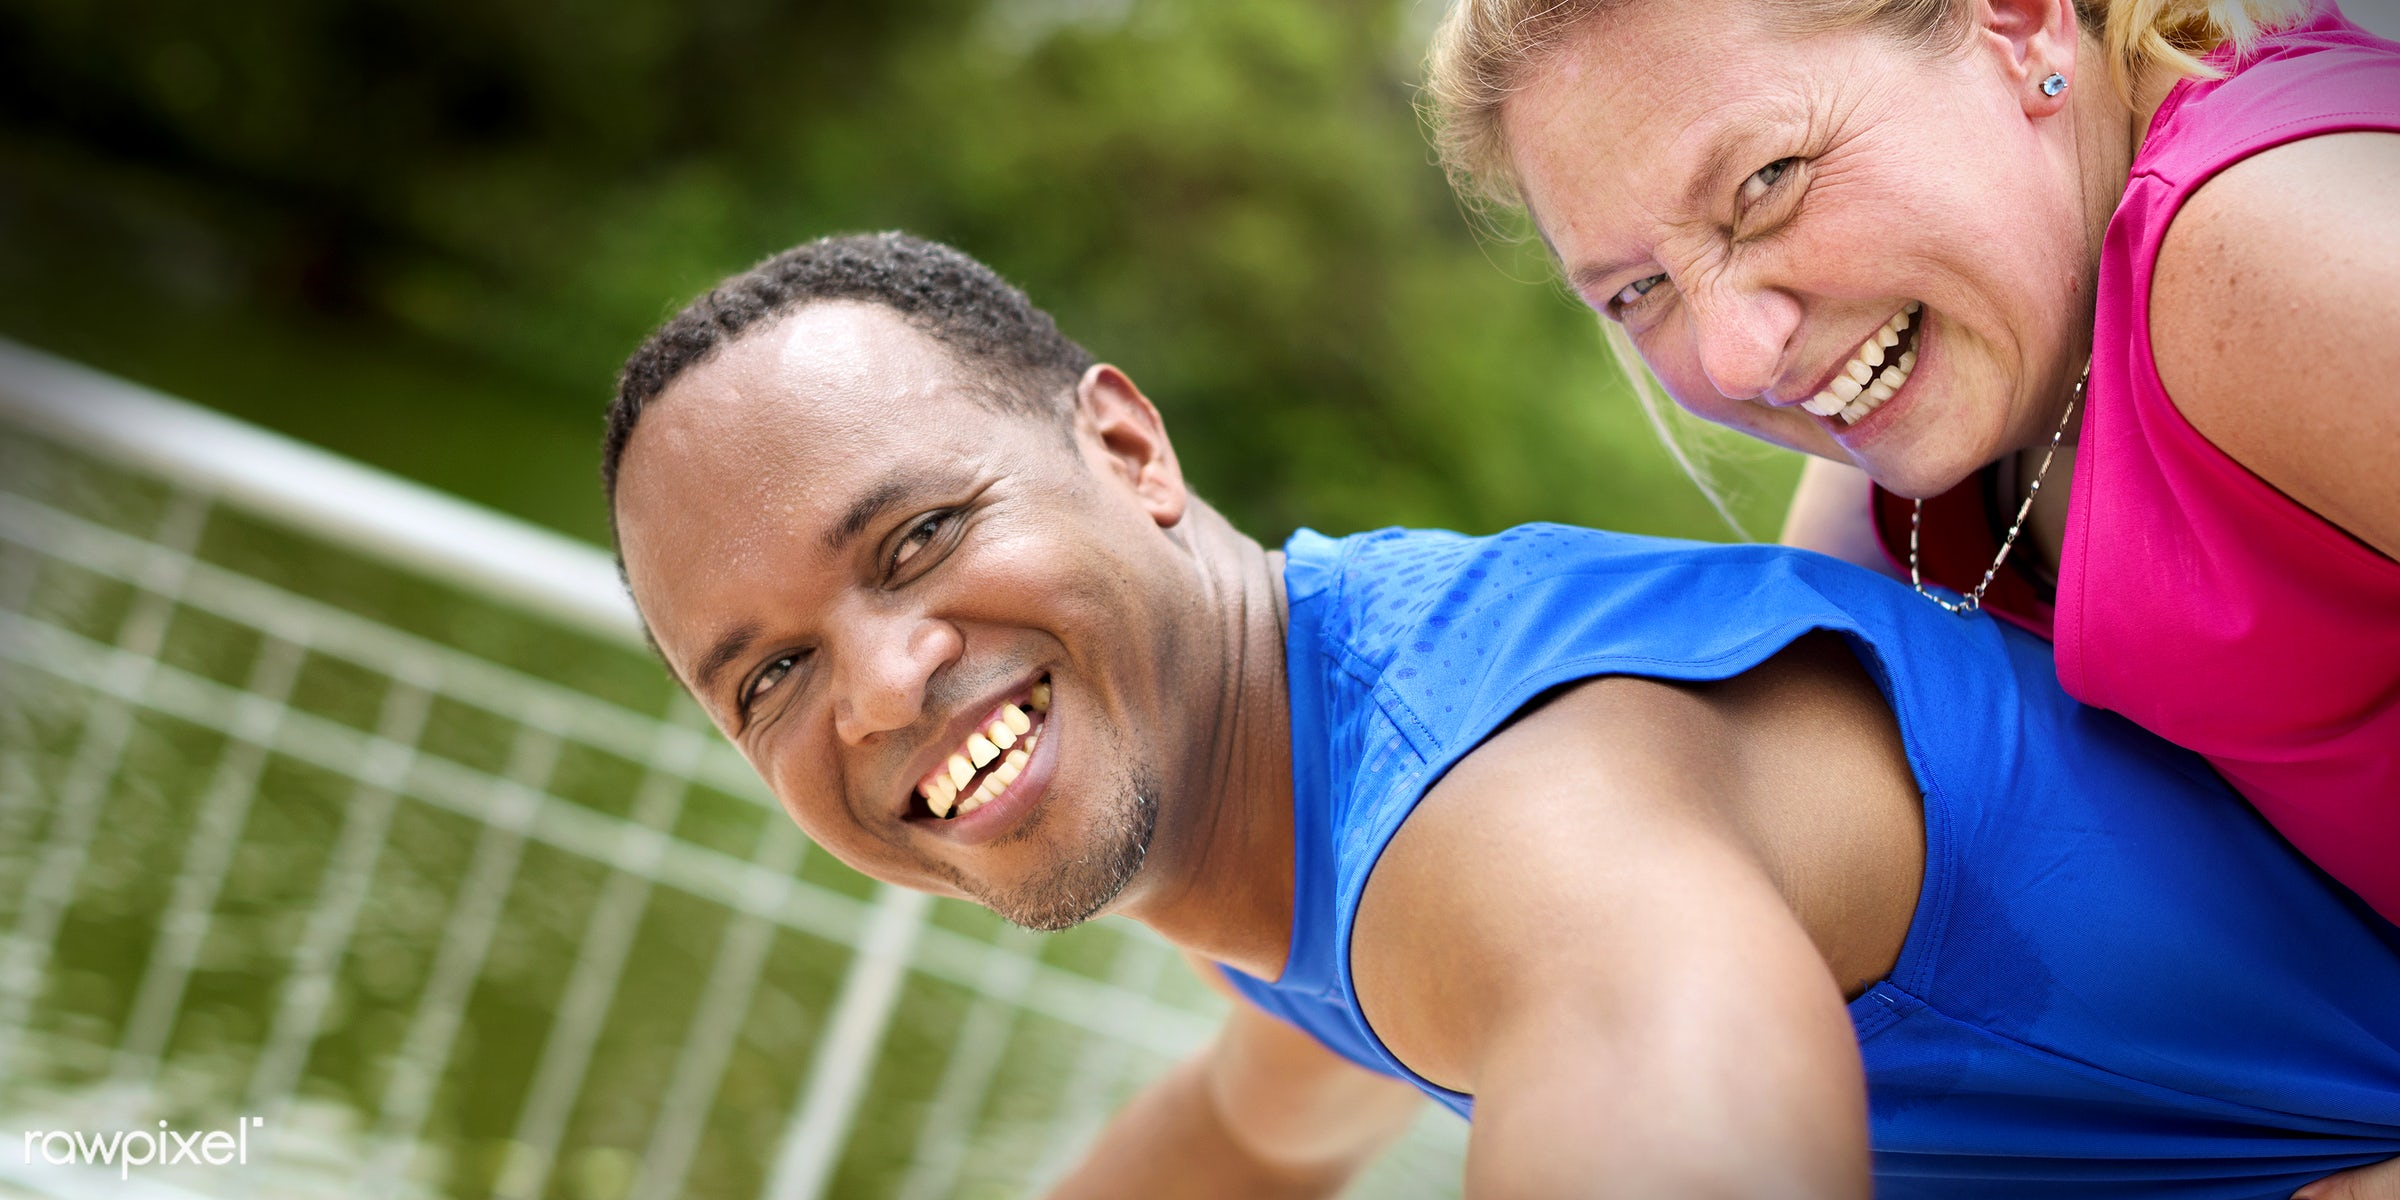 adult, african, african descent, bonding, caucasian, cheerful, clothing, couple, exercise, fitness, form, friend, friendship...